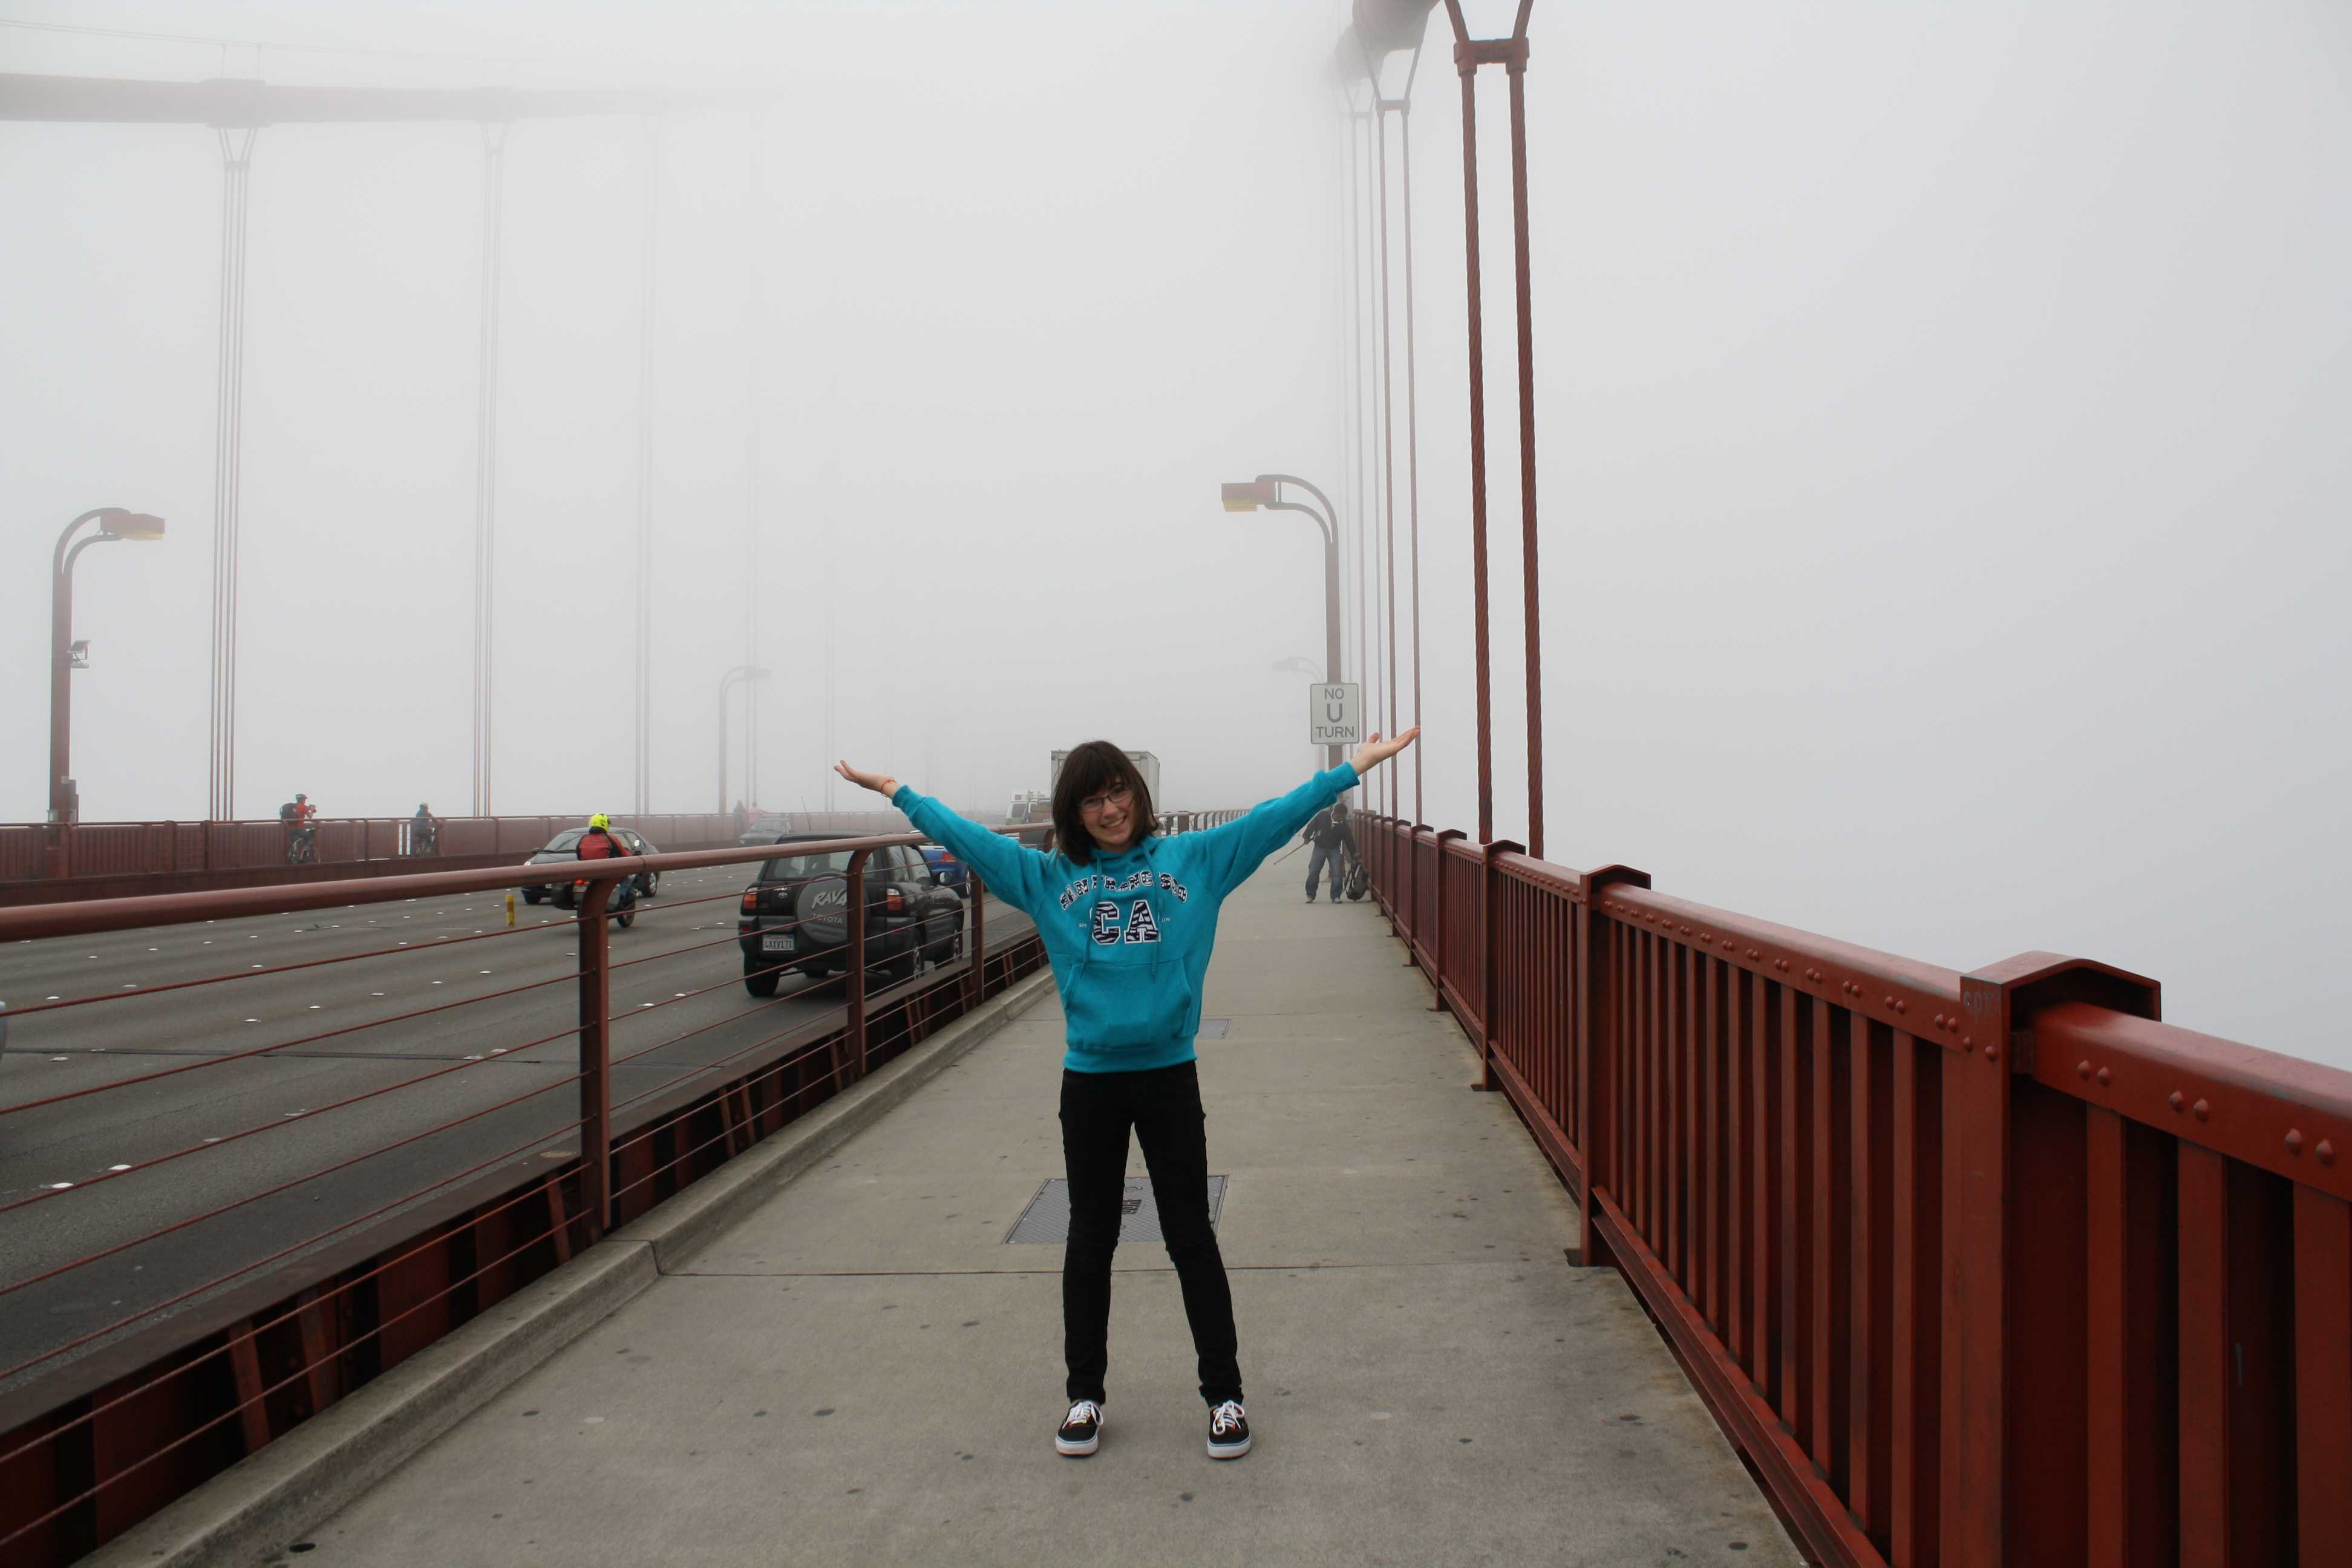 French exchange student Chloe Masero experiencing fog at the Golden Gate Bridge [photo credit to Veronica Pontis]